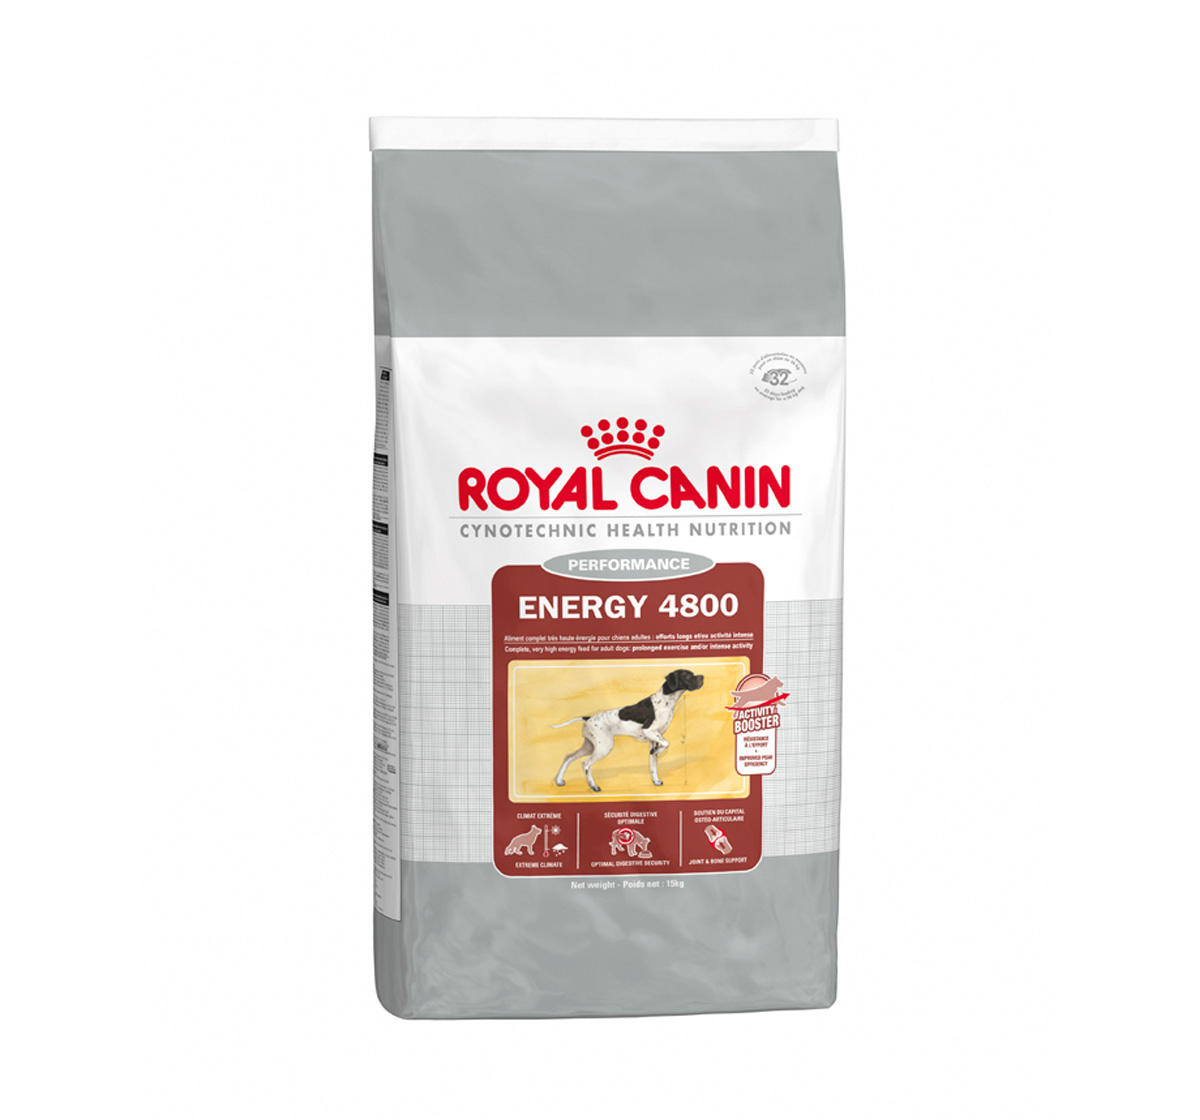 royal canin cyno energy 4800 15 kg dogspot online pet supply store. Black Bedroom Furniture Sets. Home Design Ideas